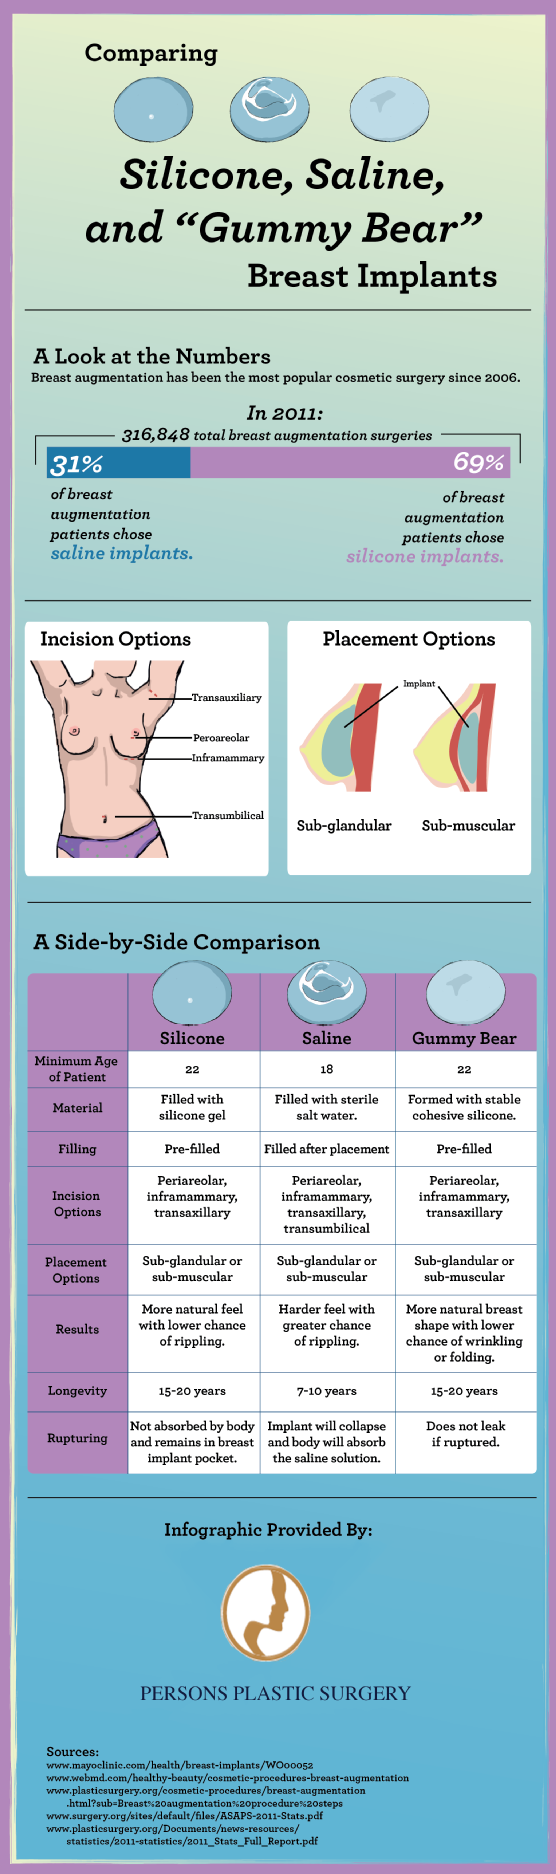 a short history of breast implants